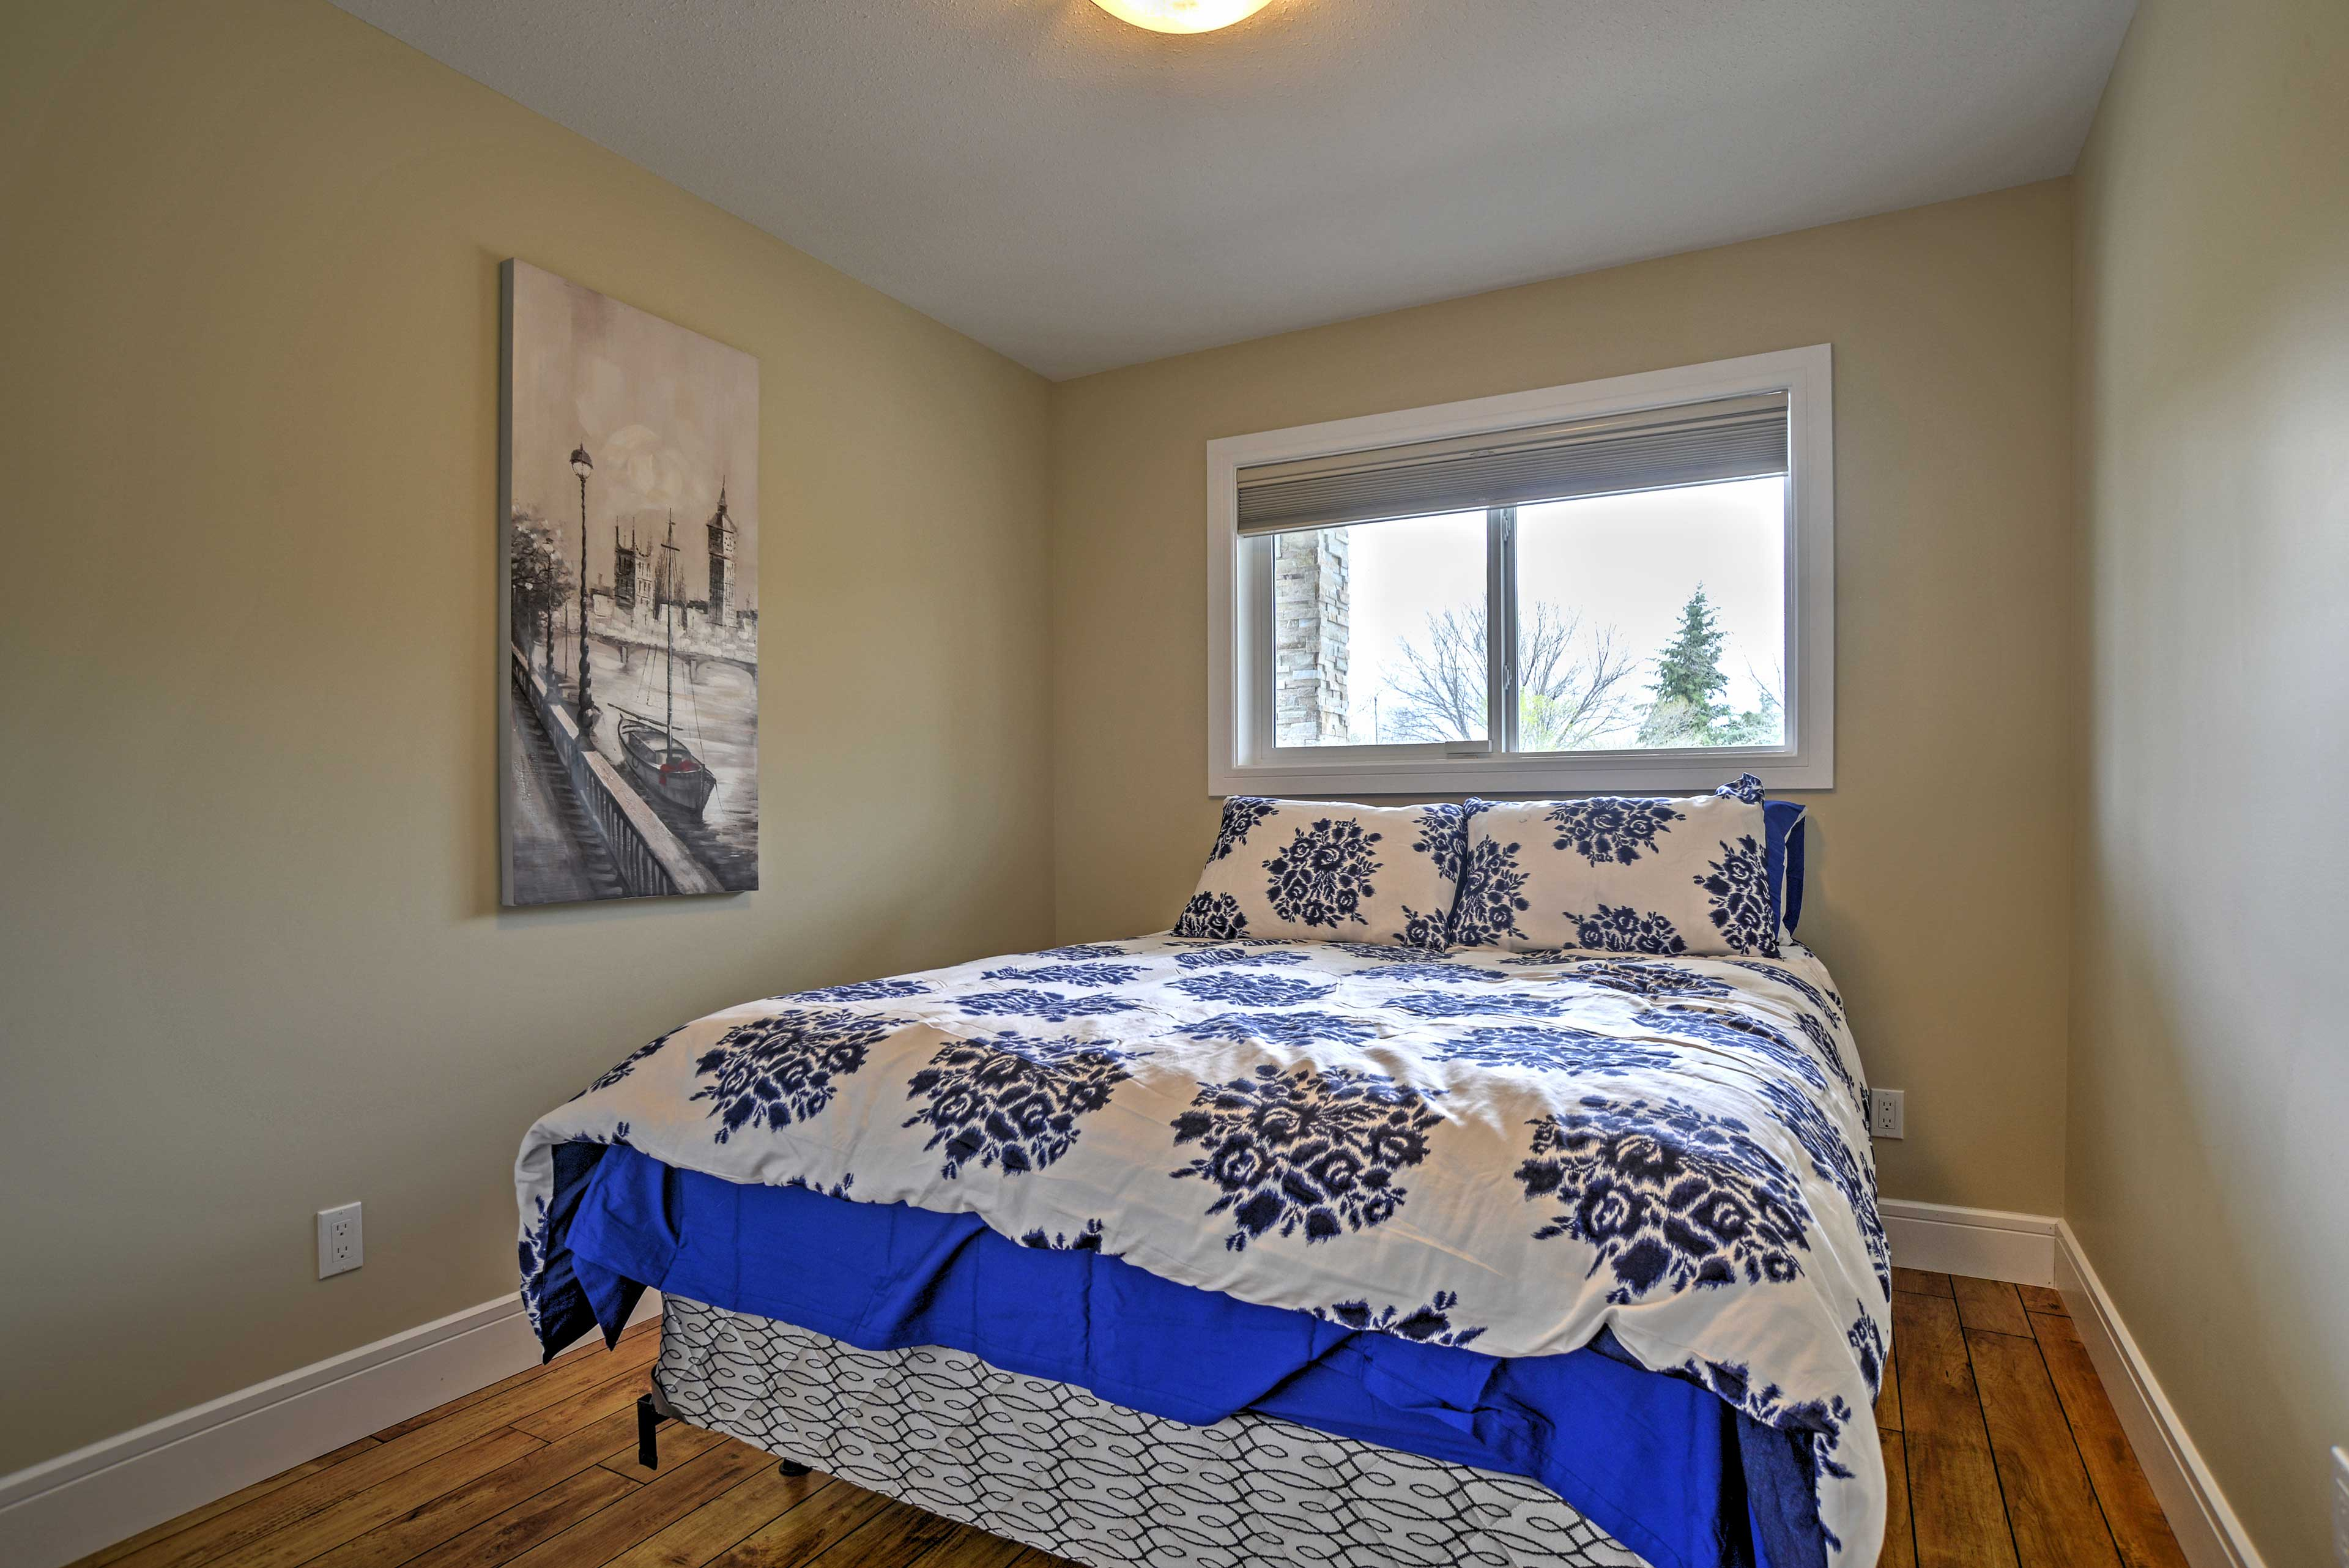 Almost all bedrooms feature a cozy queen-sized bed.